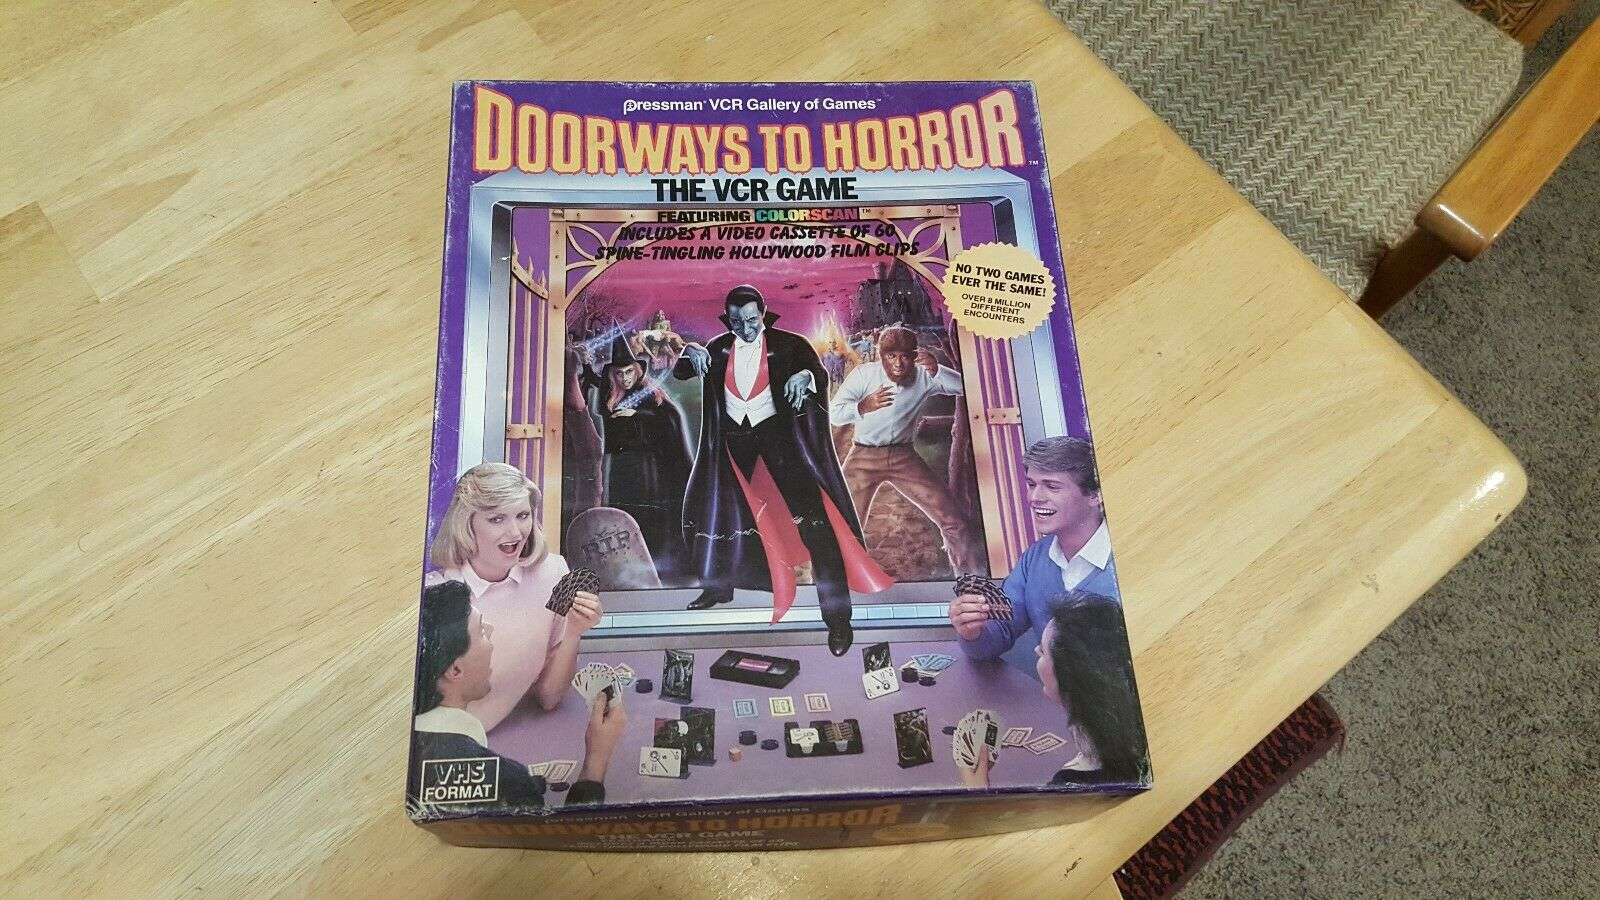 1986 DOORWAYS TO HORROR VCR GAME WITH ORIGINAL BOX COMPLETE